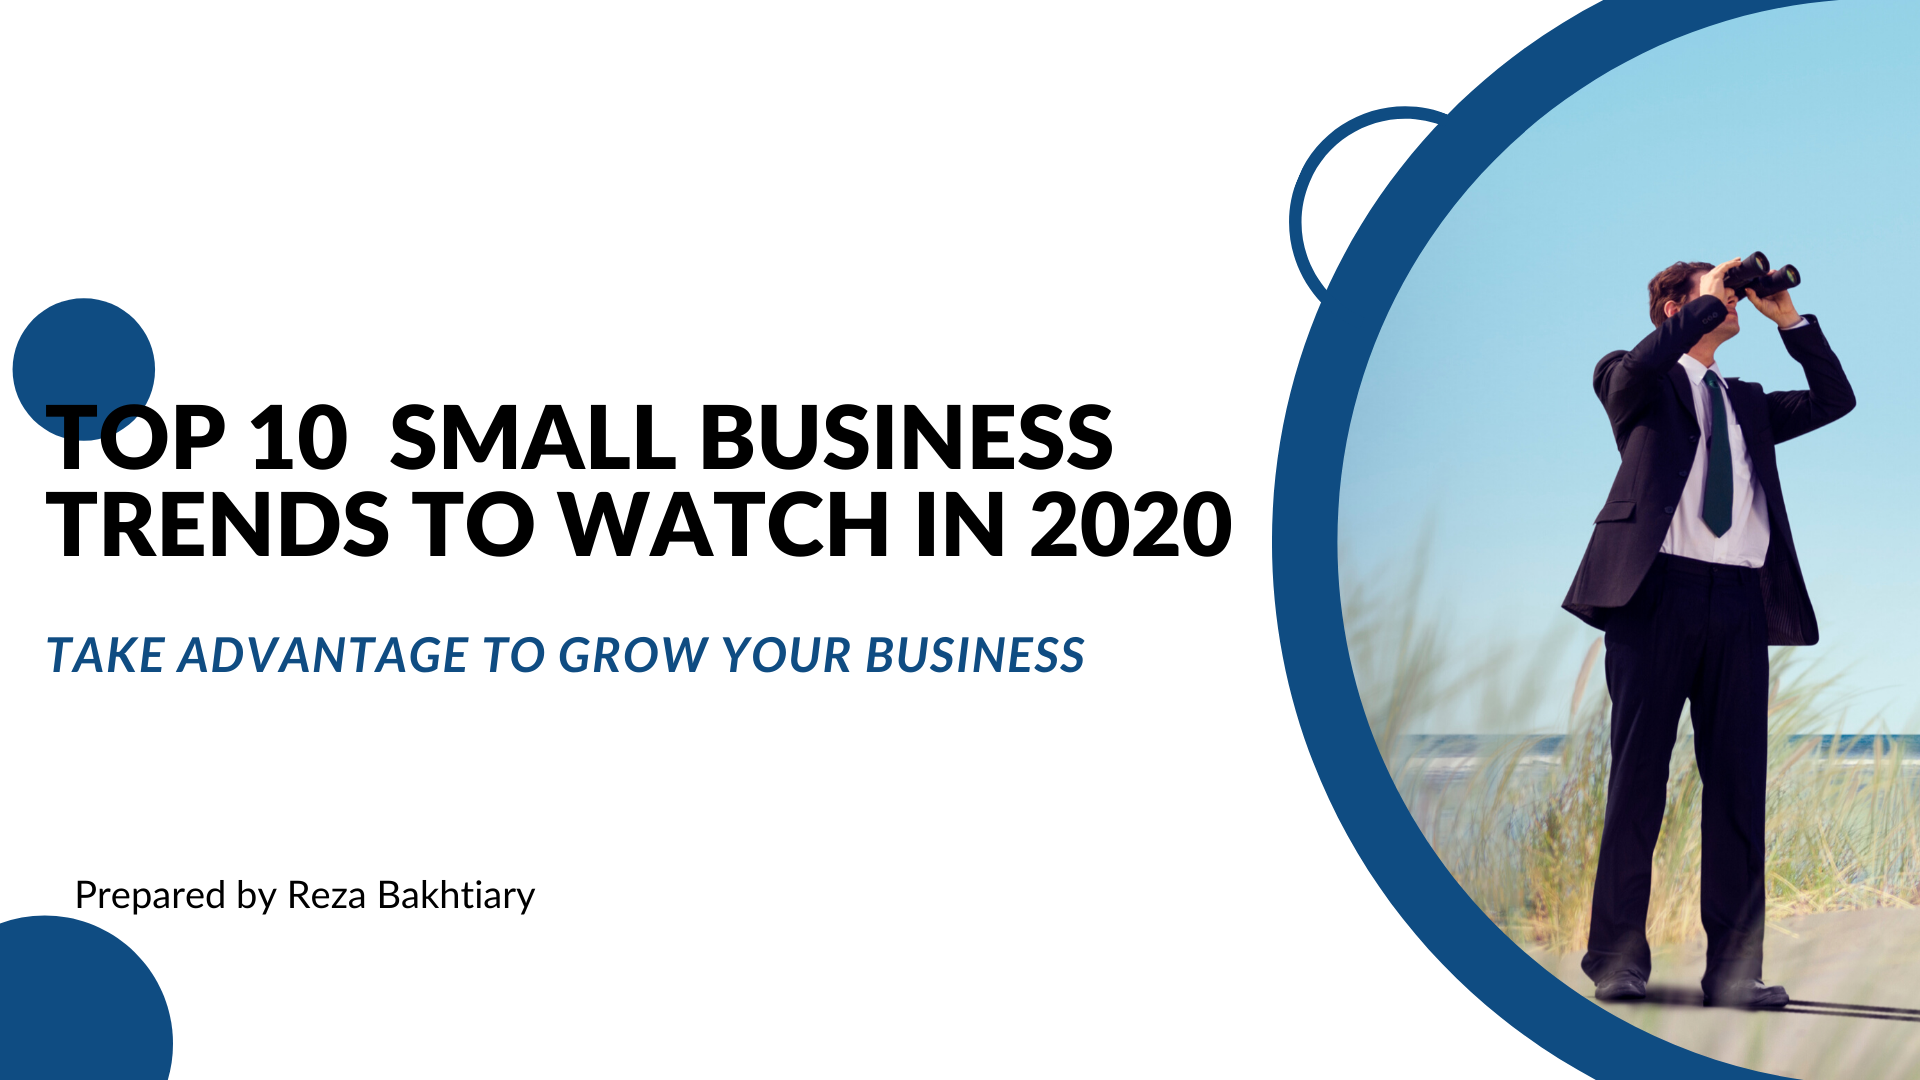 Top 10 Small Business Trends to Watch in 2020